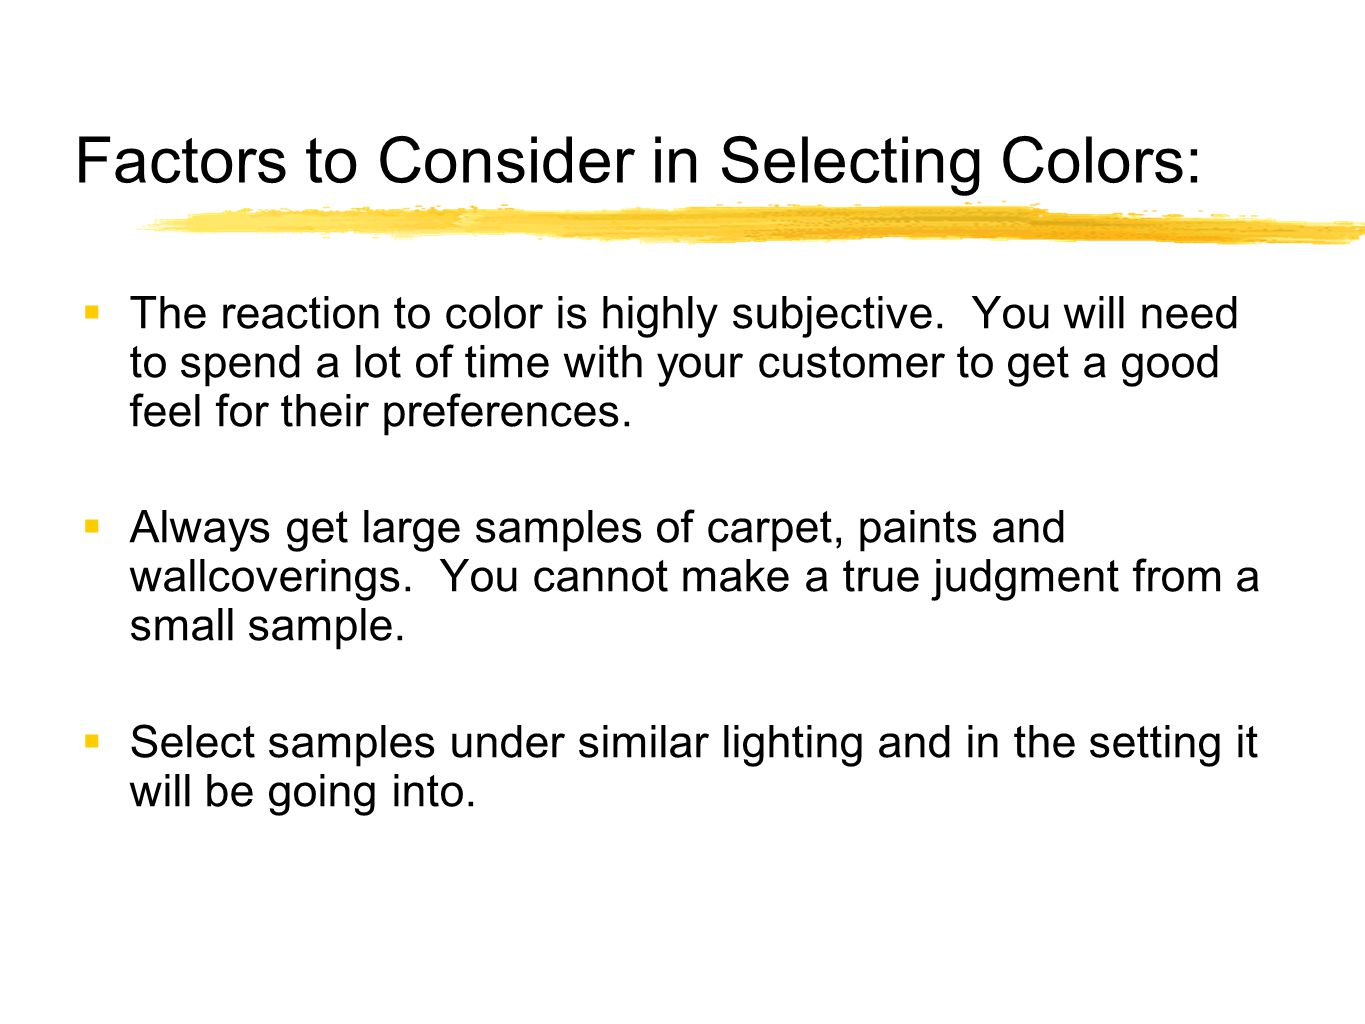 Factors to Consider in Selecting Colors: